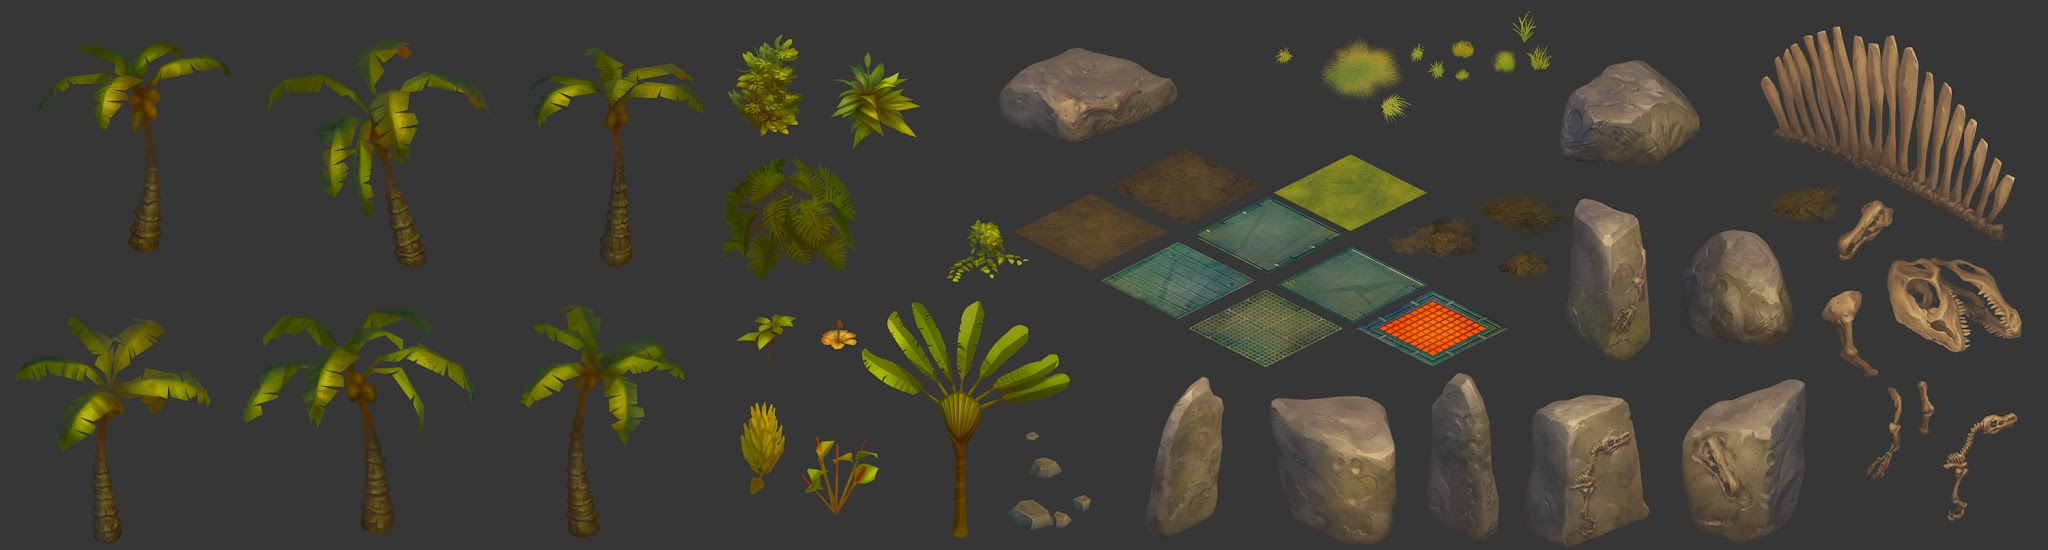 Eletric Jungle Assets